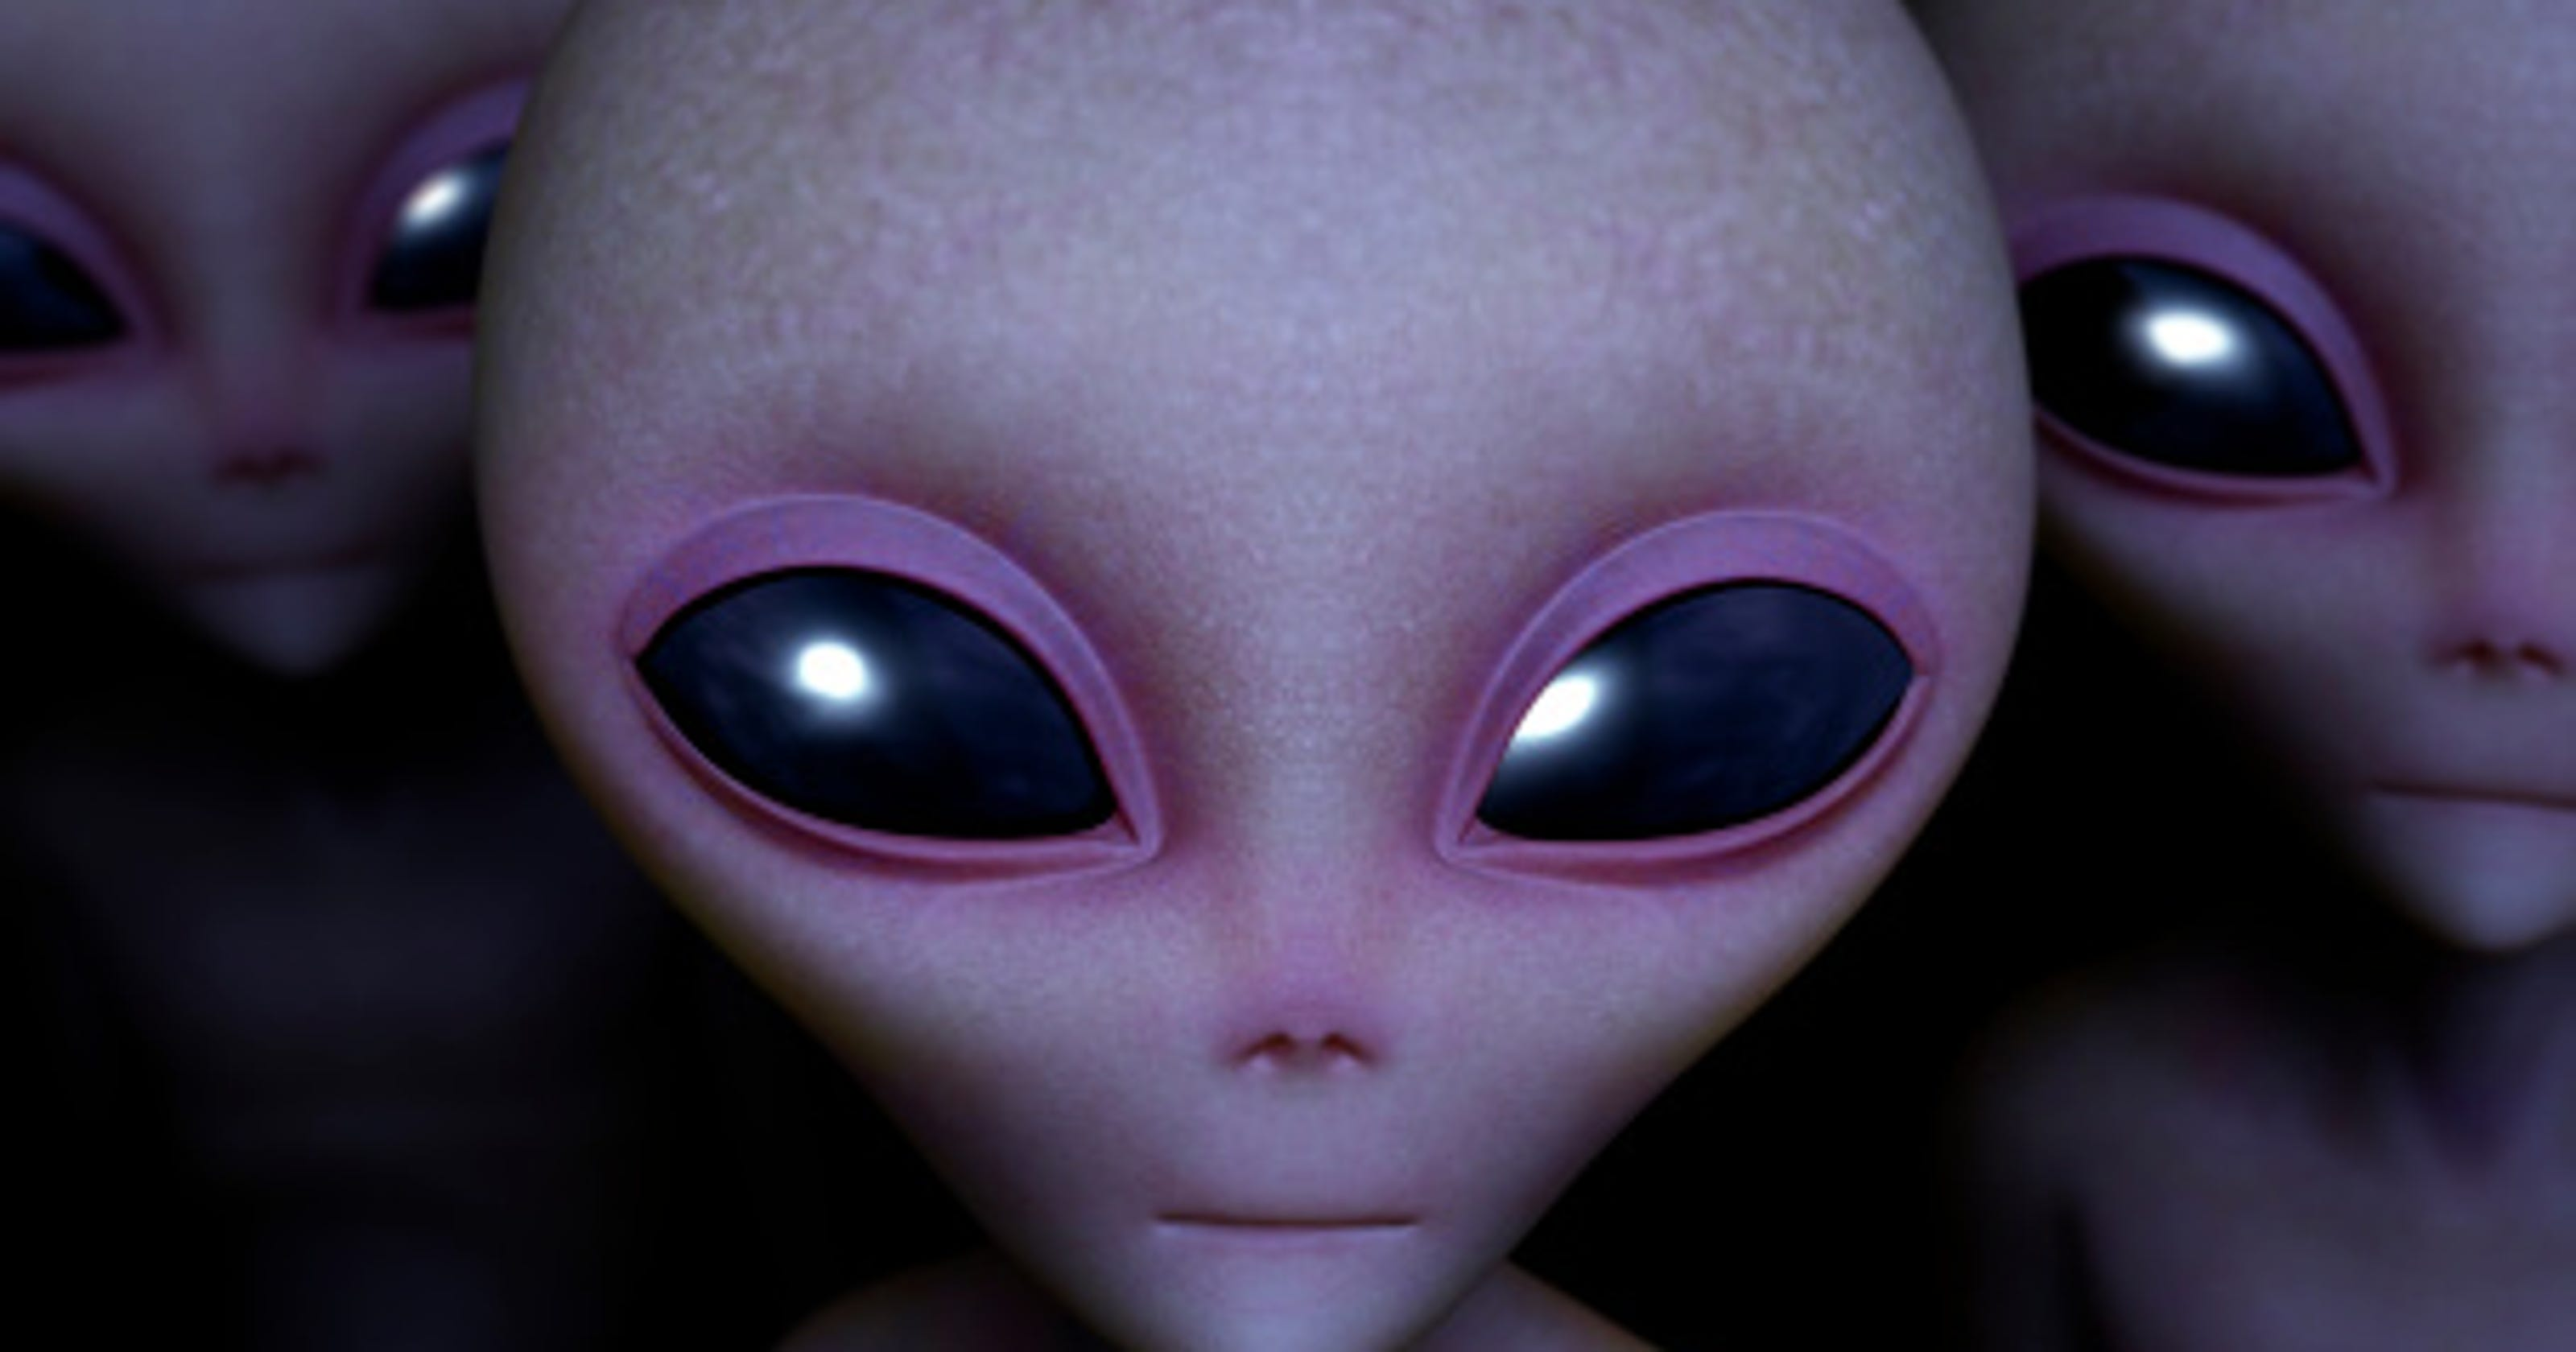 UFO encounter? Footage shows pilots' apparent sighting of alien craft